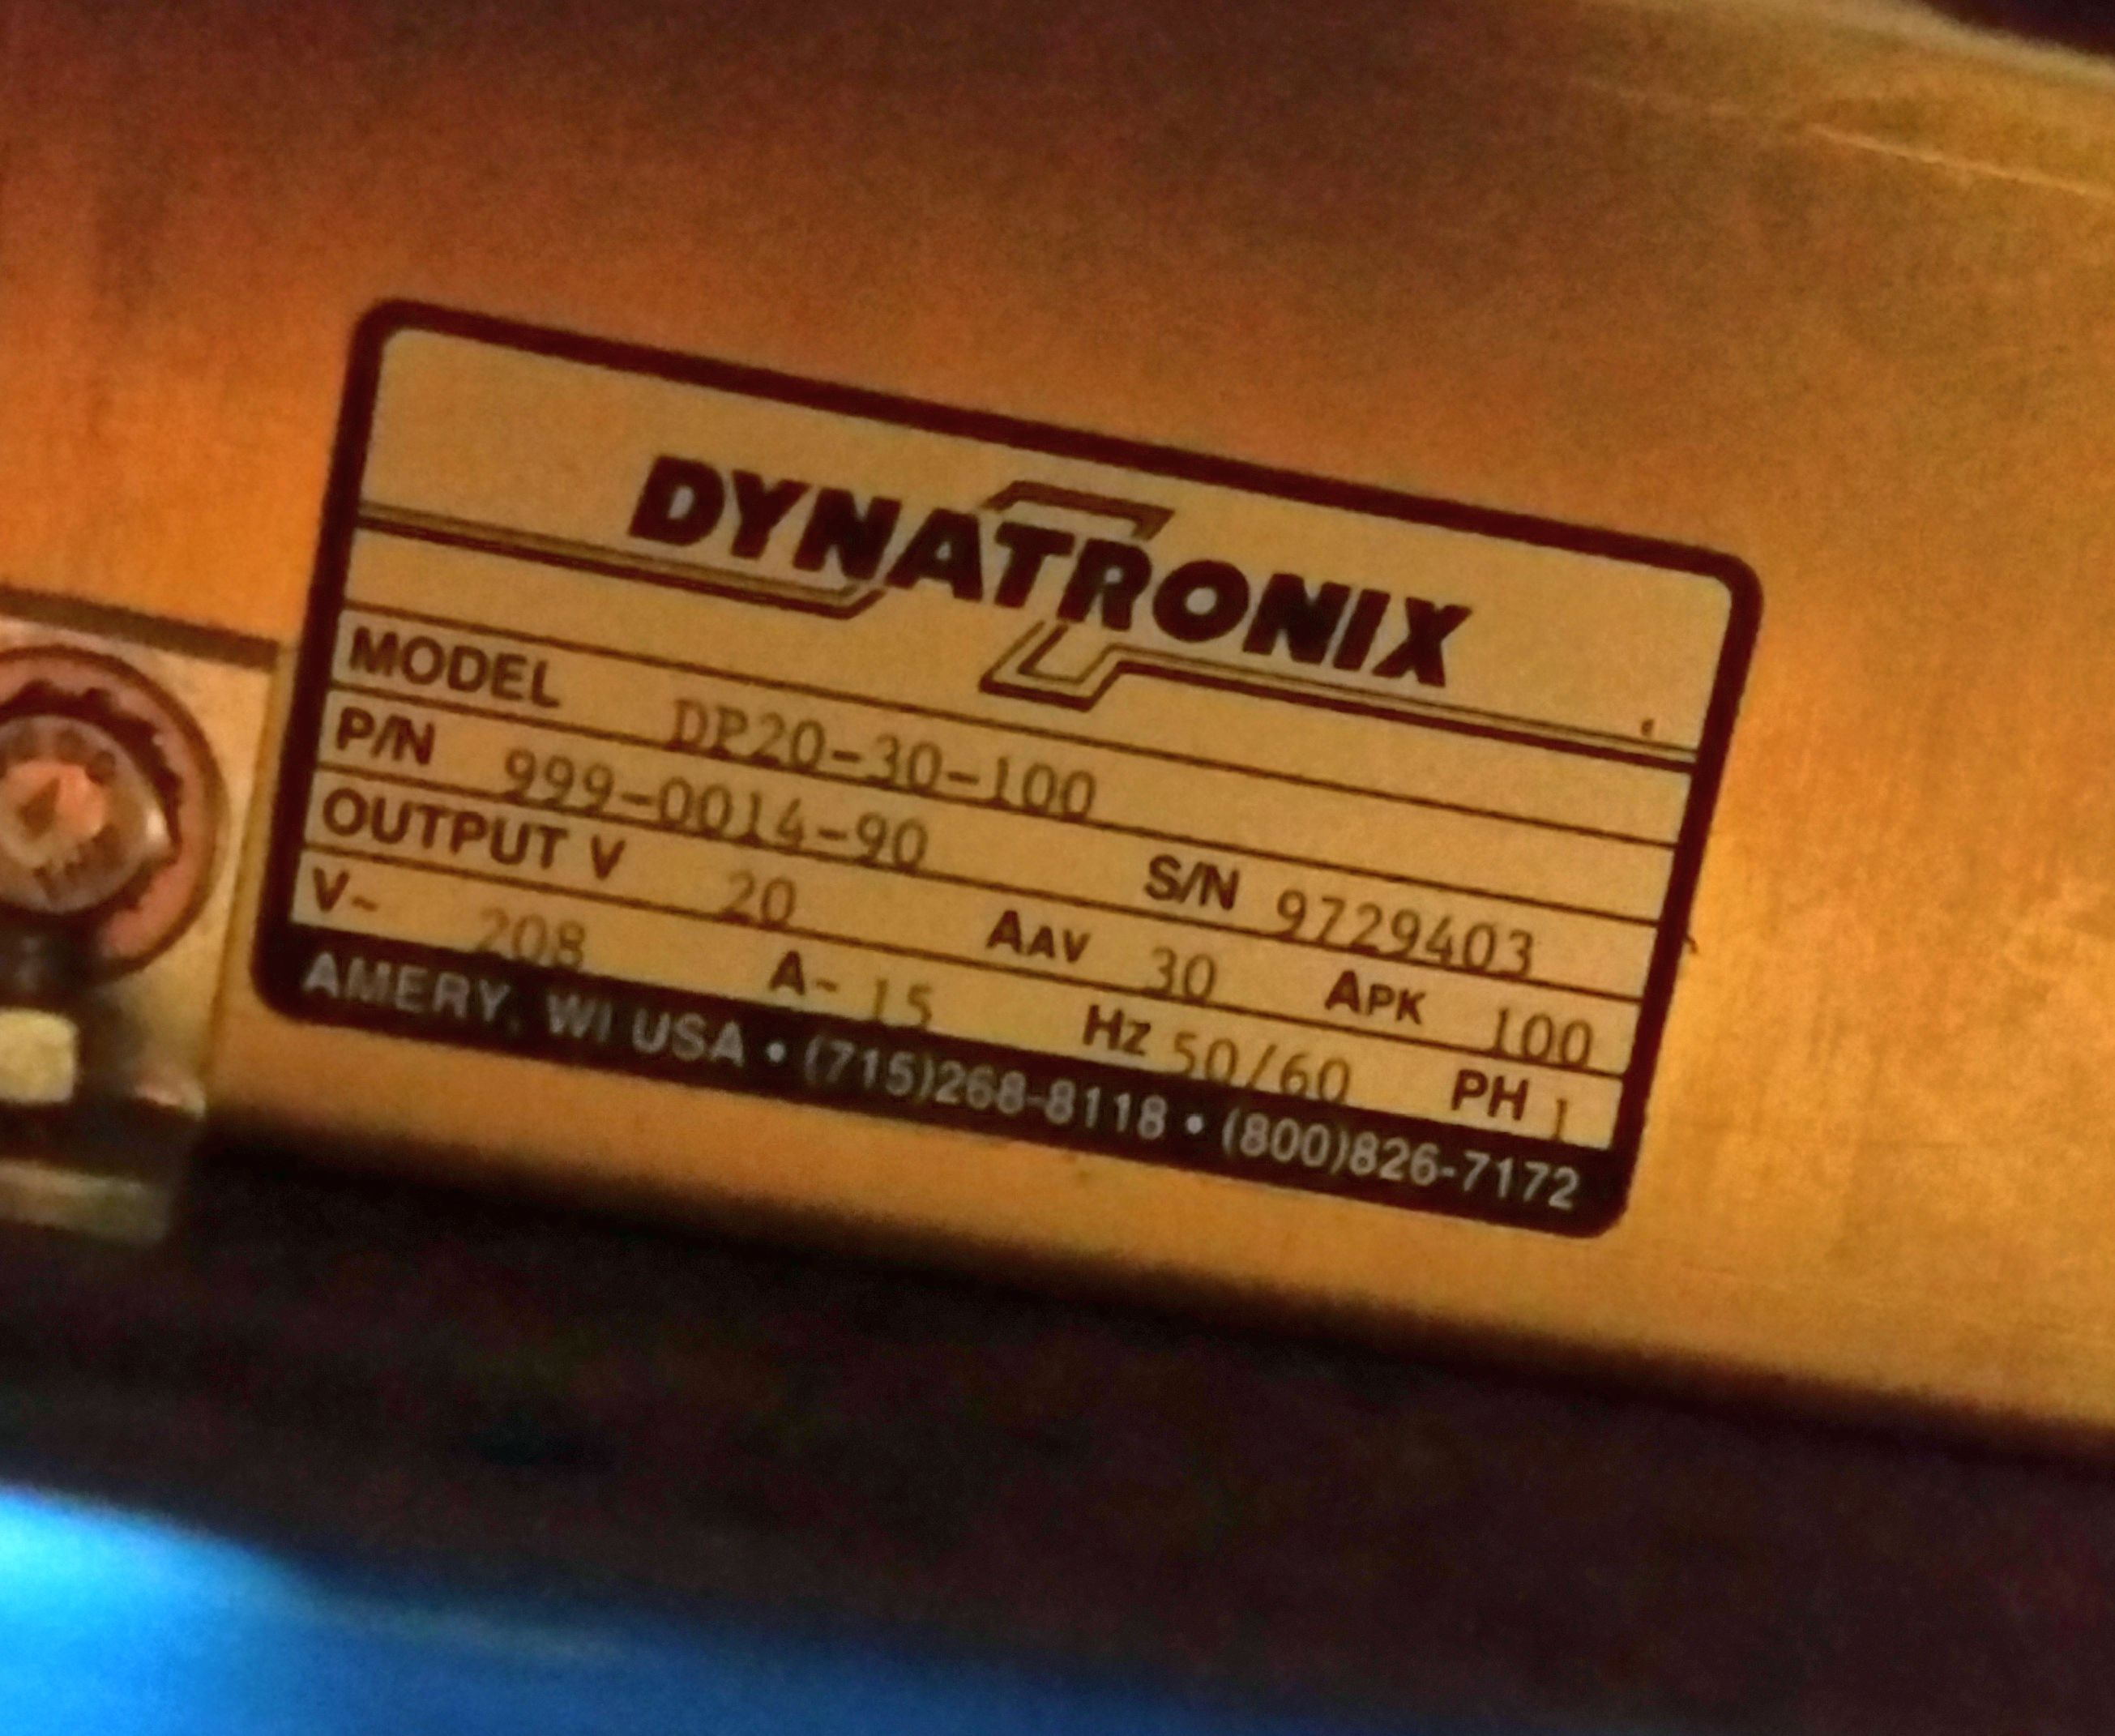 (1) Used Dynatronix DP20-30-100 Pulse Power Supply 8240